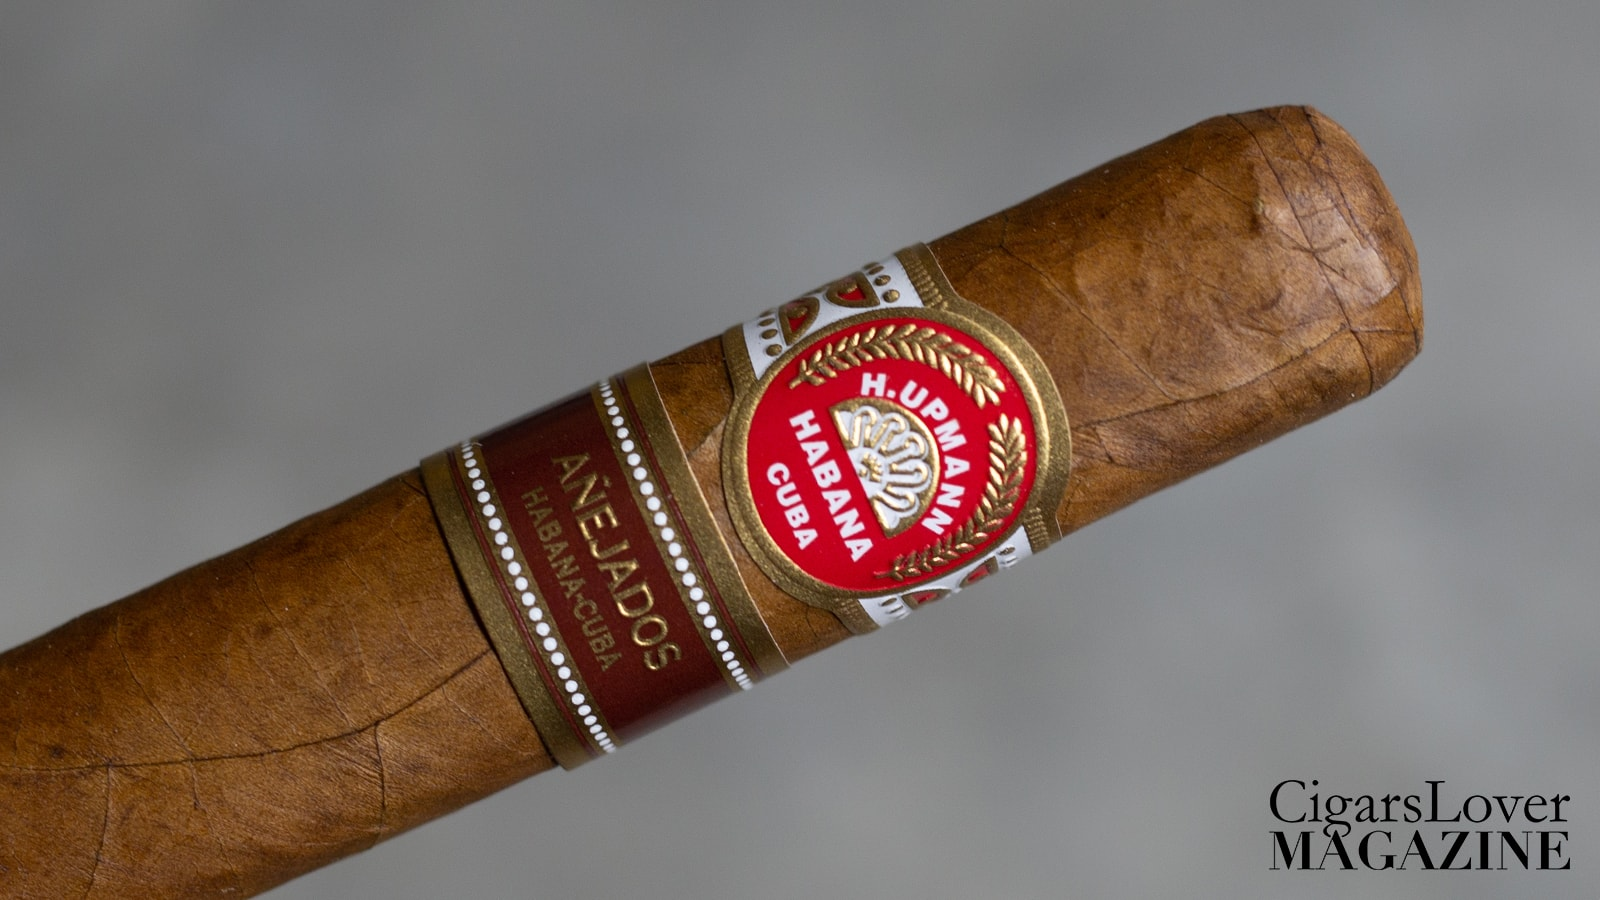 The H. Upmann Anejados Robusto belongs to the Anejados line, launched in 2015. The main characteristic of the Anejados line isthe aging, but not the one of the tobacco leaves (as usually happens) but of the cigars themselves, which are left to rest before being labeled and marketed. This cigars were announce in 2016, but they got to the market at the end of 2017/begin of 2018.